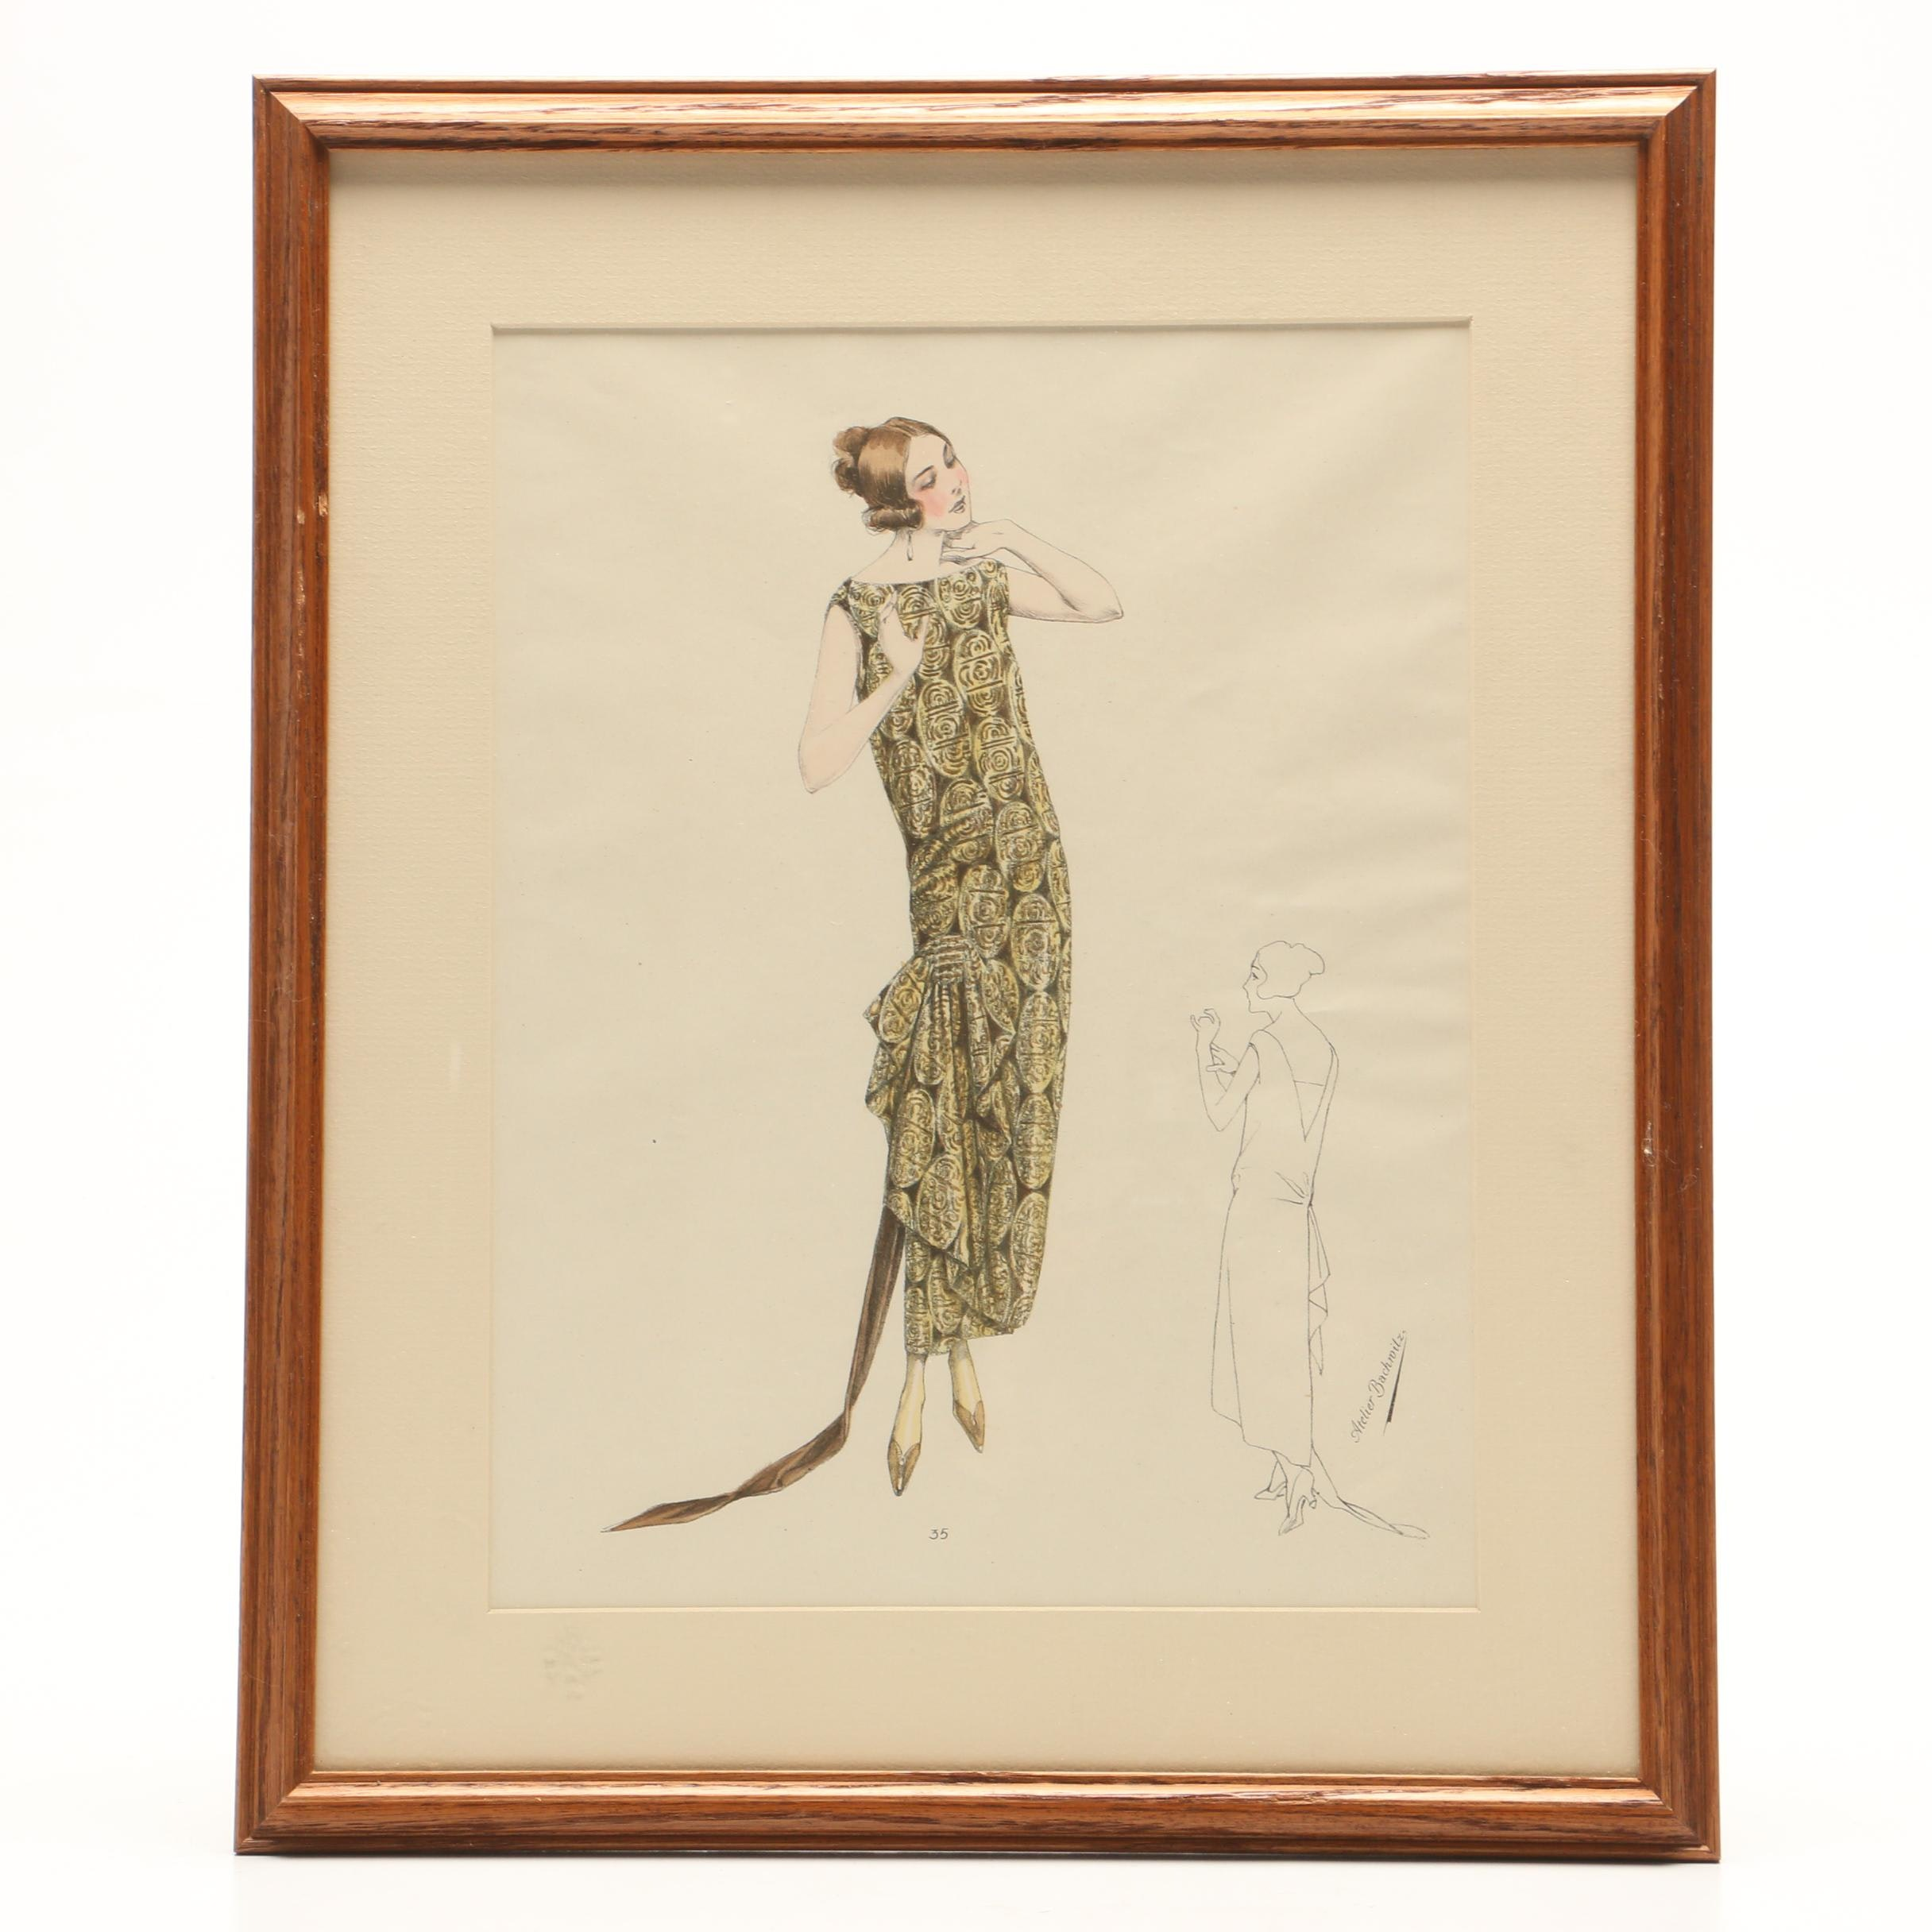 "Atelier Bachwitz Lithograph Page from ""Classic French Fashions of the Twenties"""